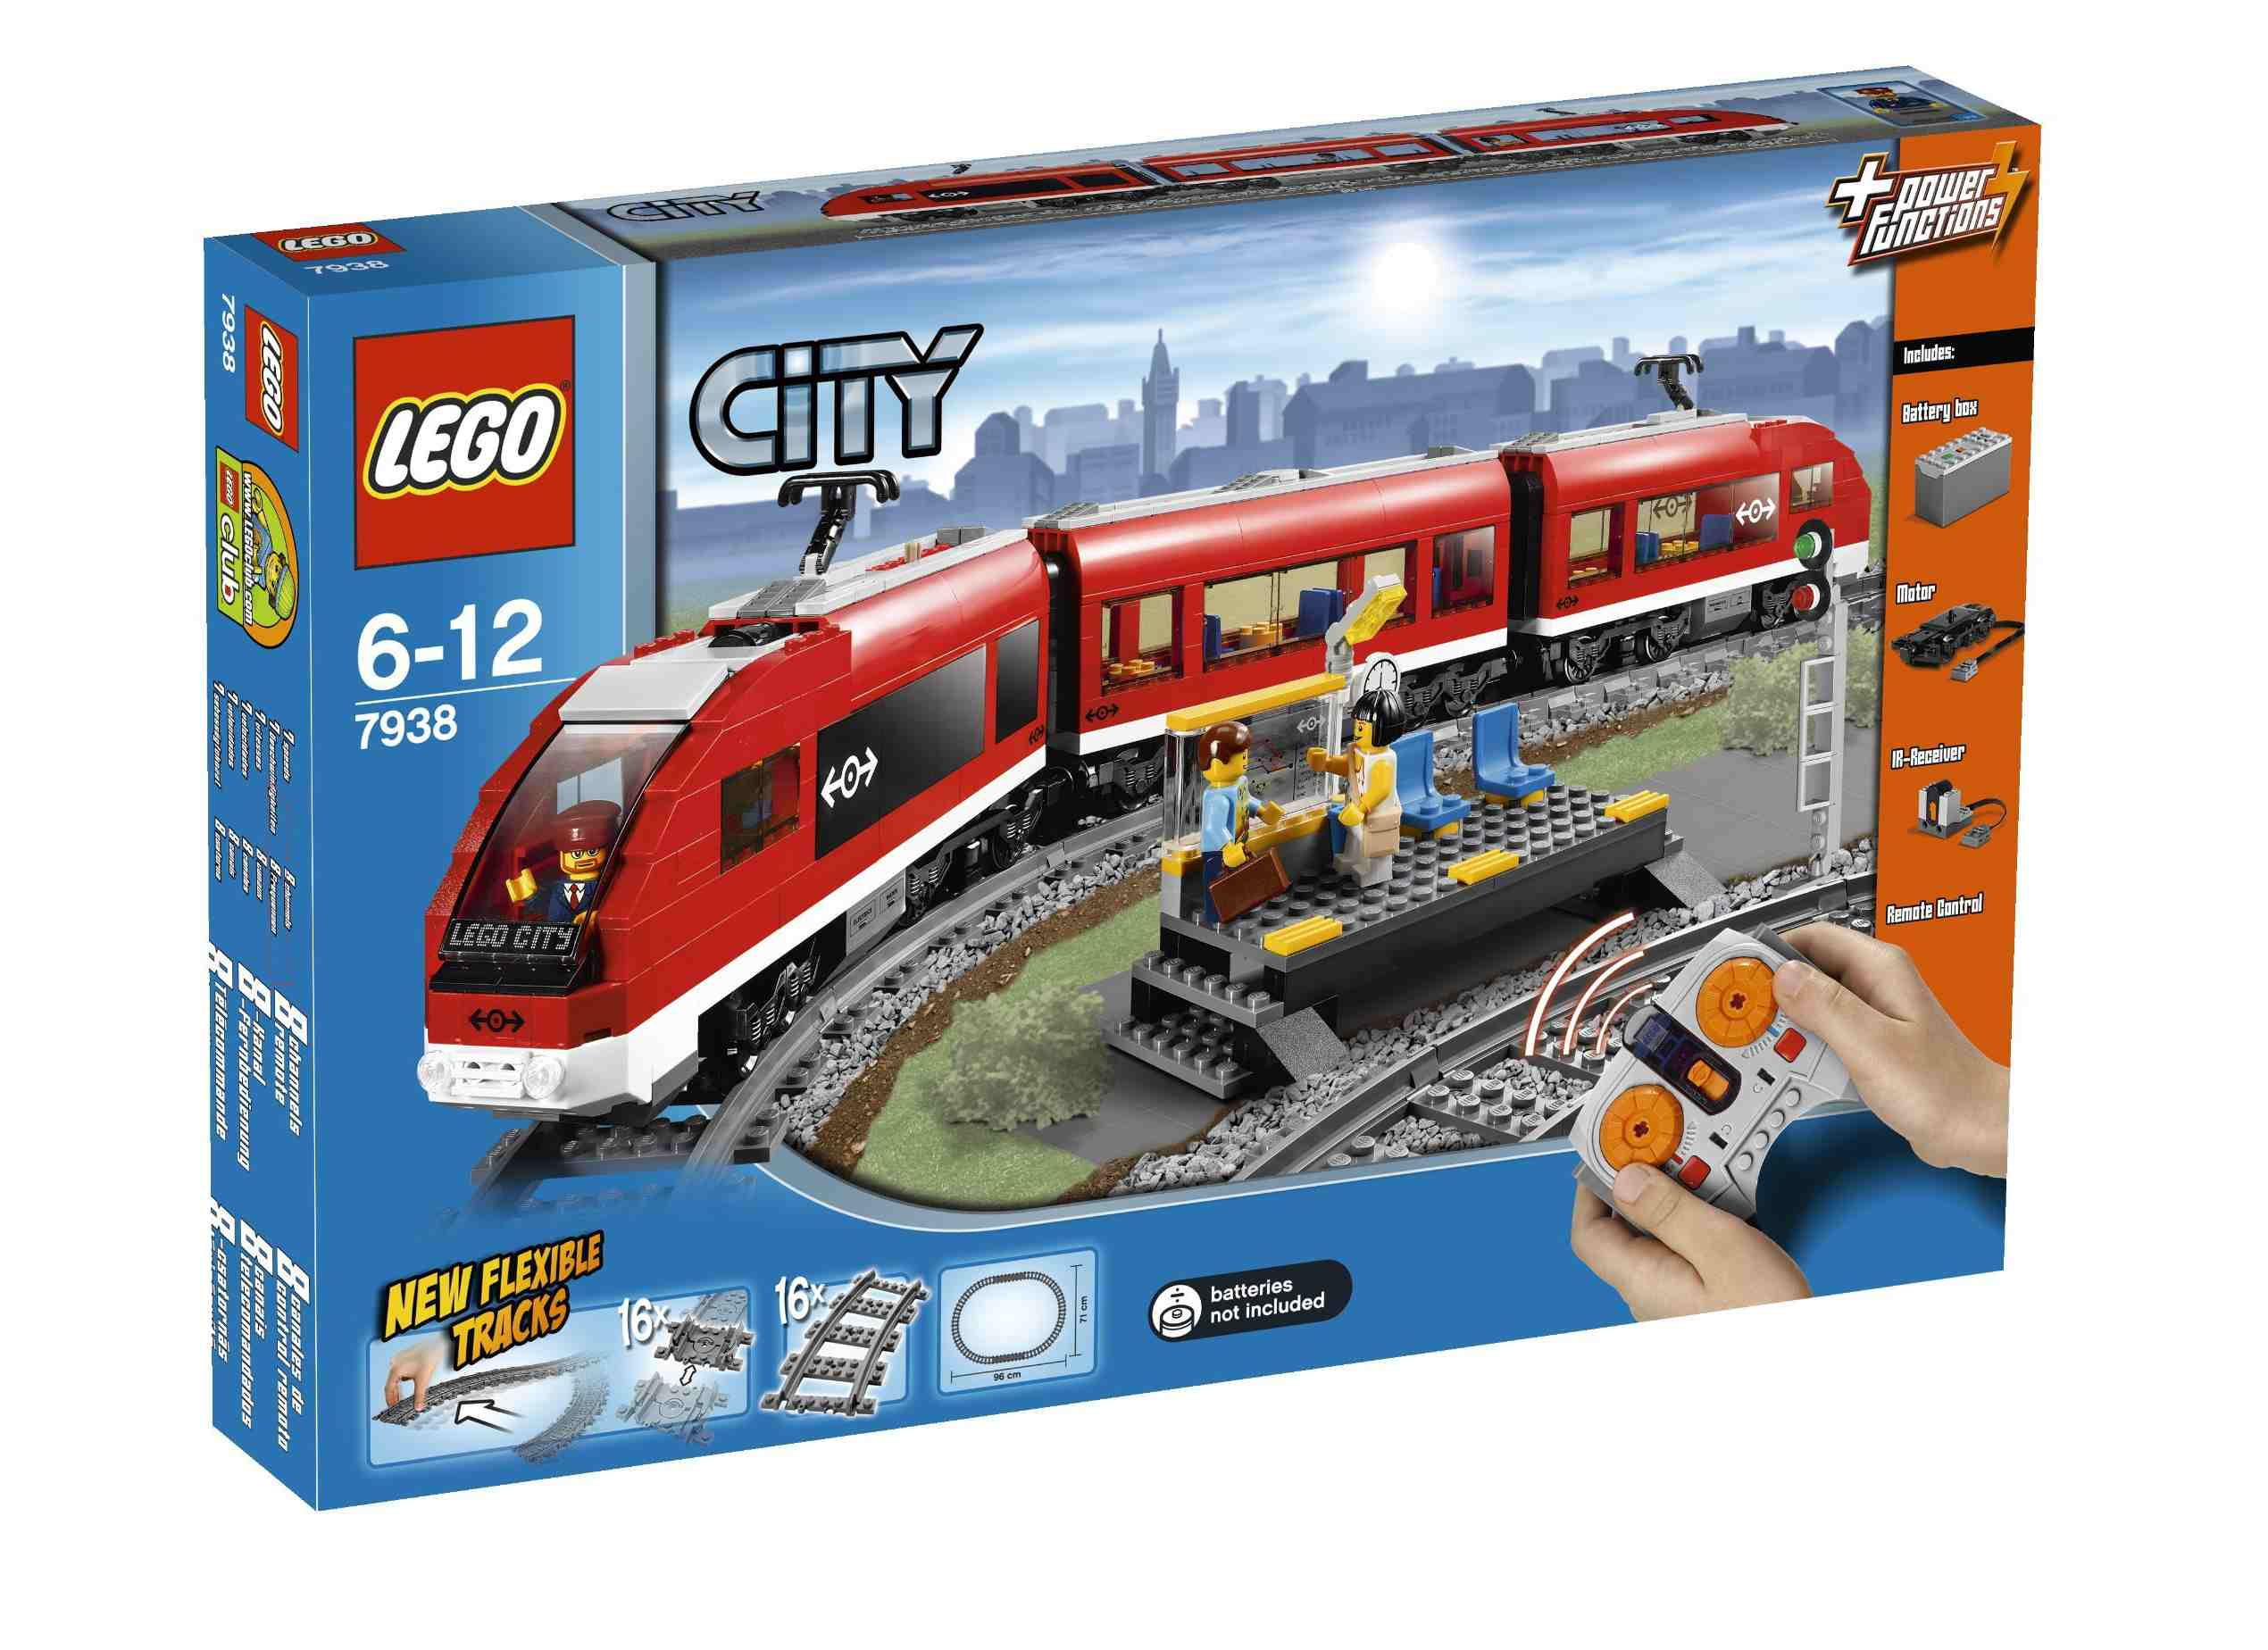 Lego City Passenger Train 7938 Passenger Train